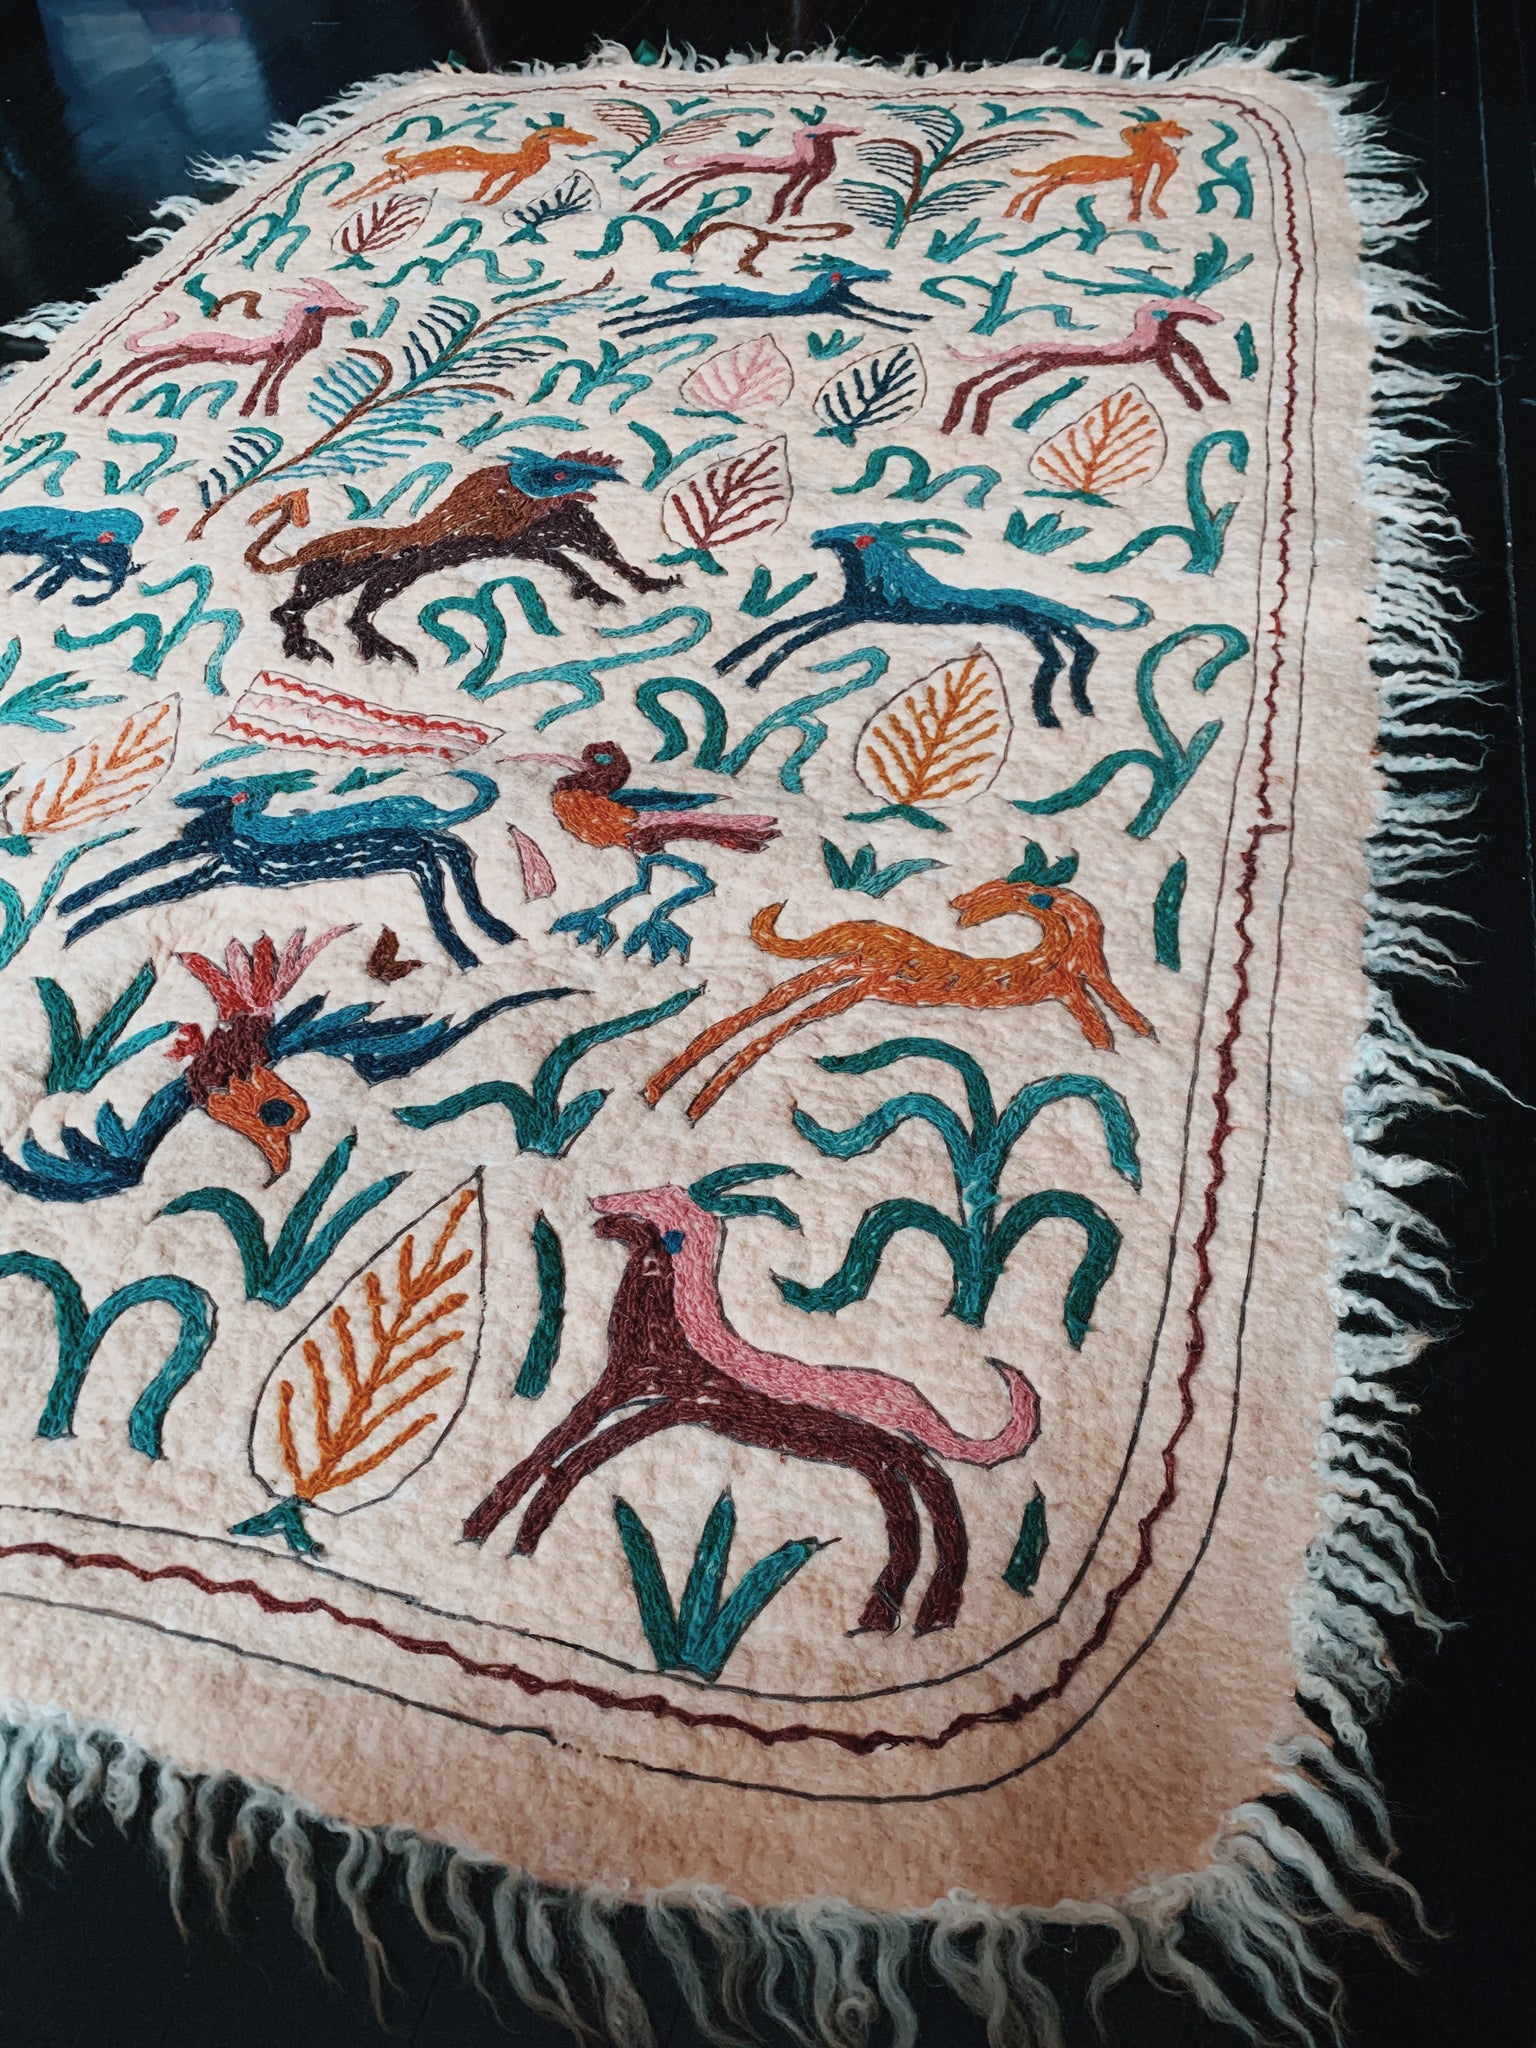 Vintage Woven Wool Embroidered Textile (South American, 1970's)